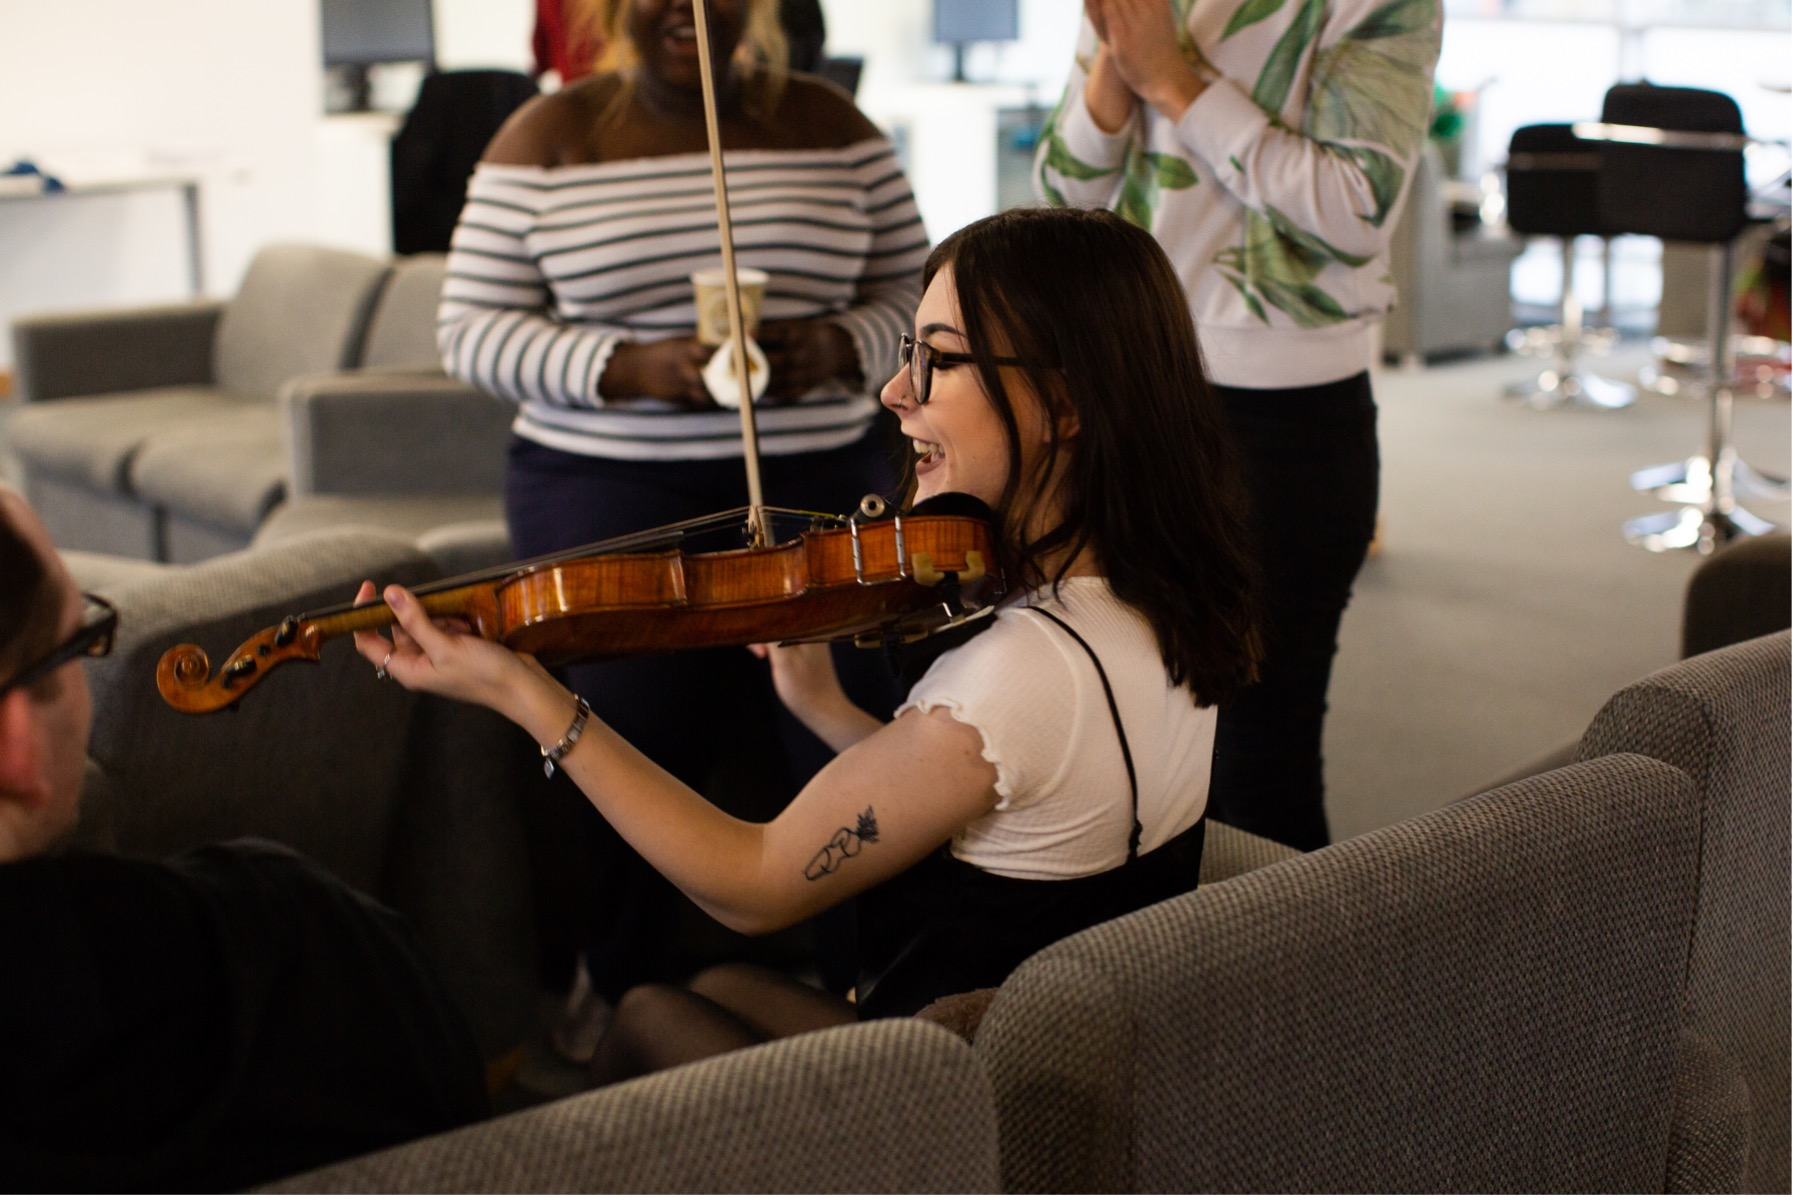 Steph sits on a sofa and plays violin - she is smiling